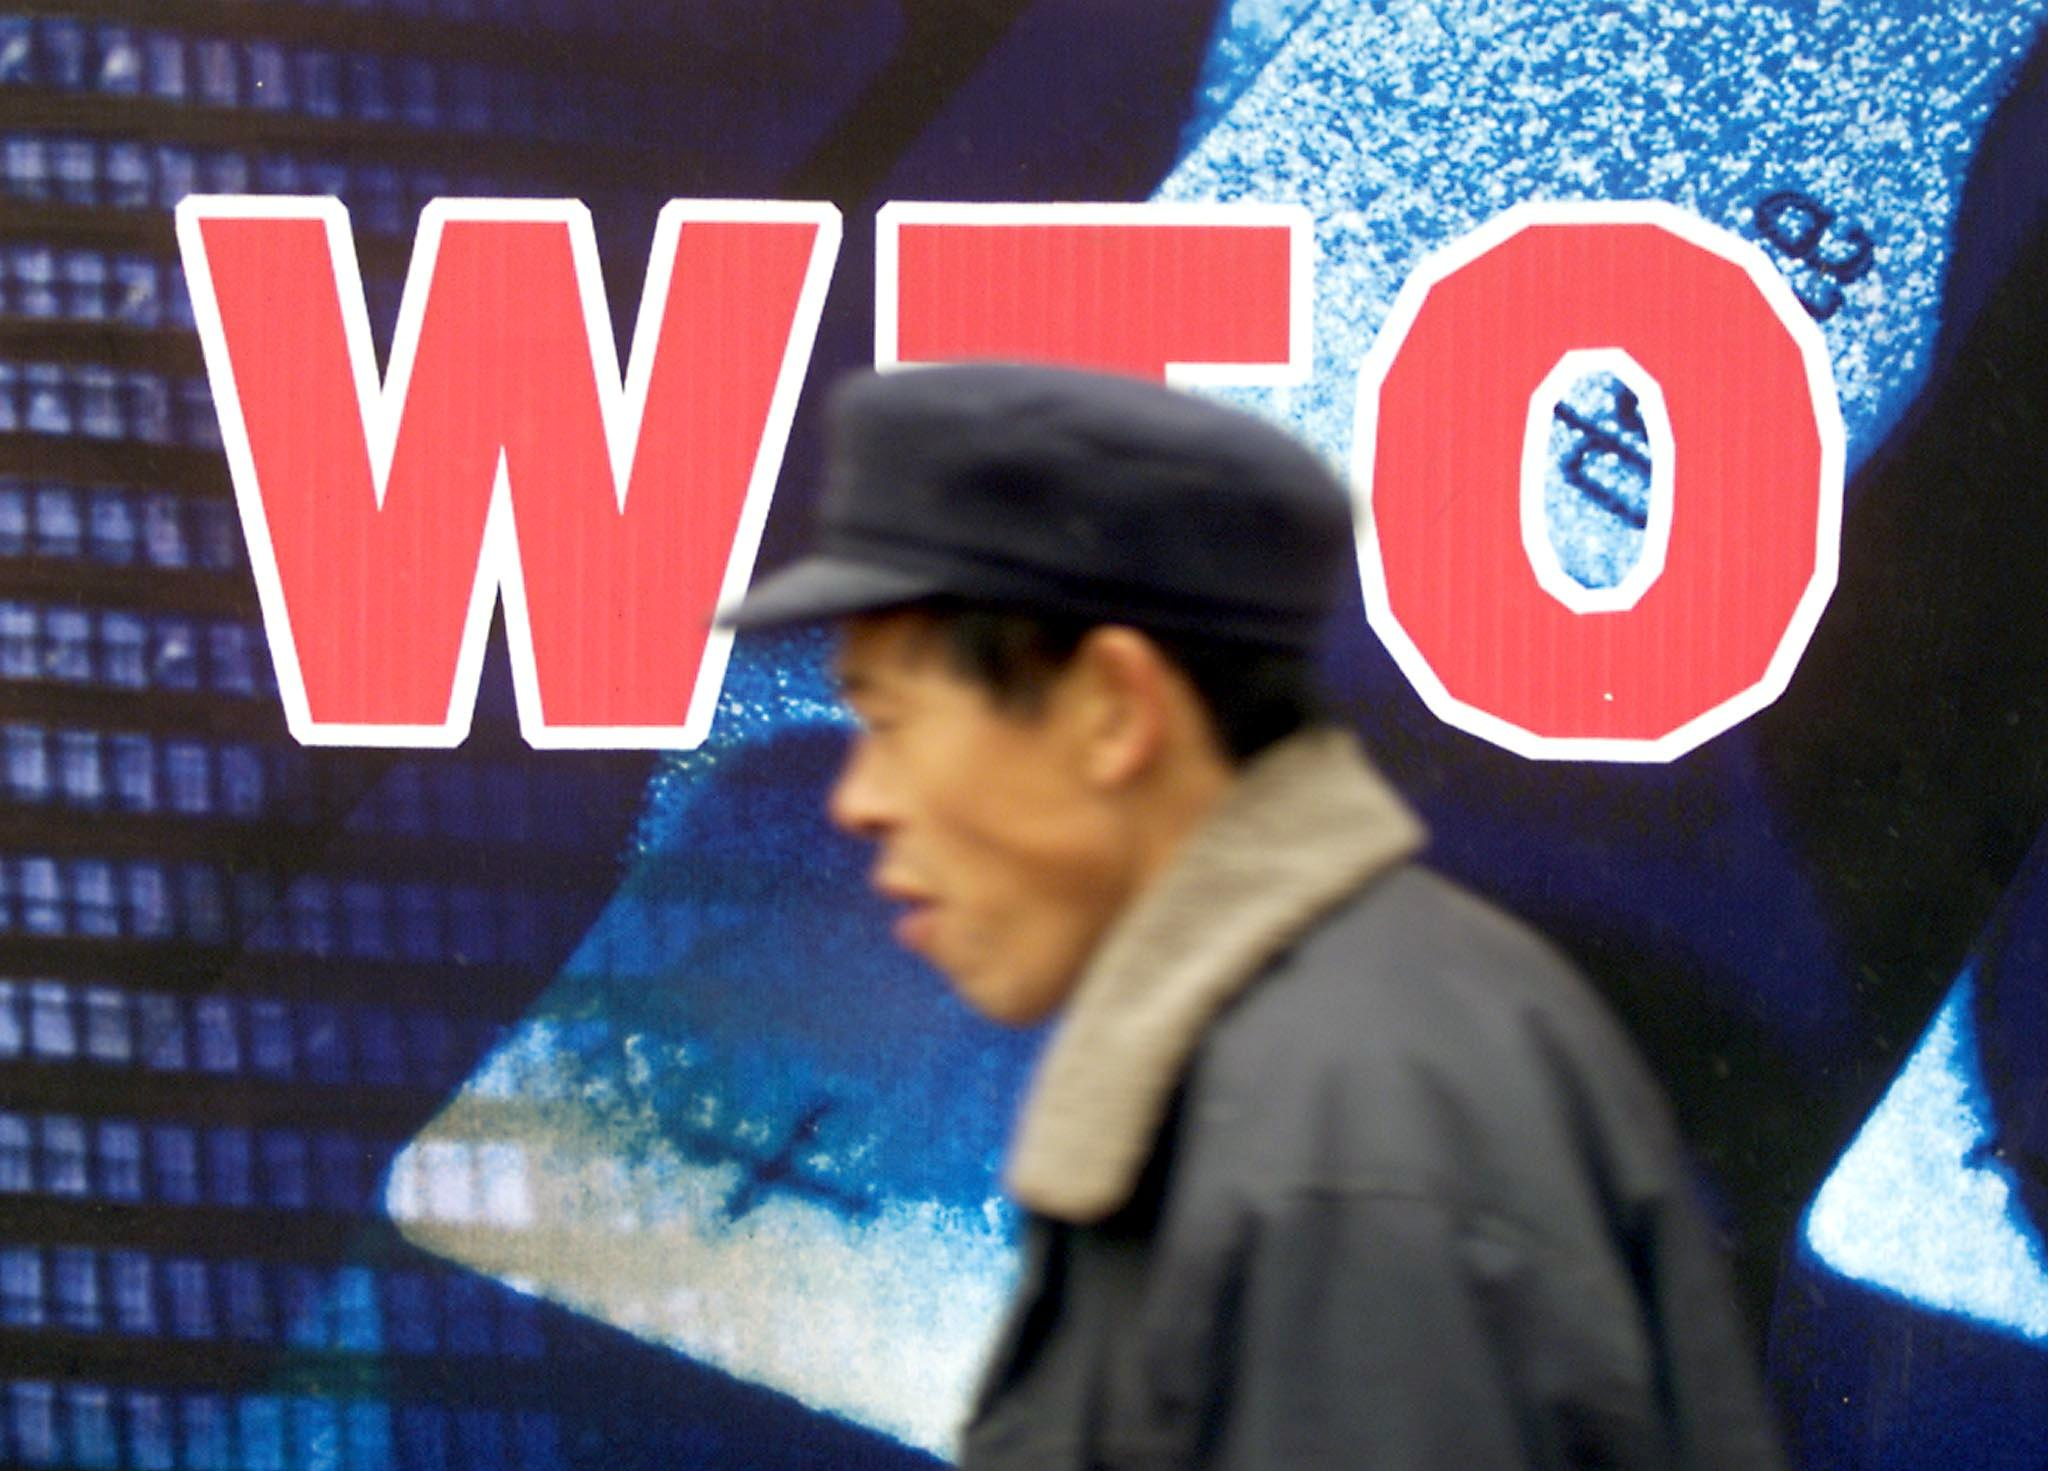 A Chinese man walks past a billboard welcoming the